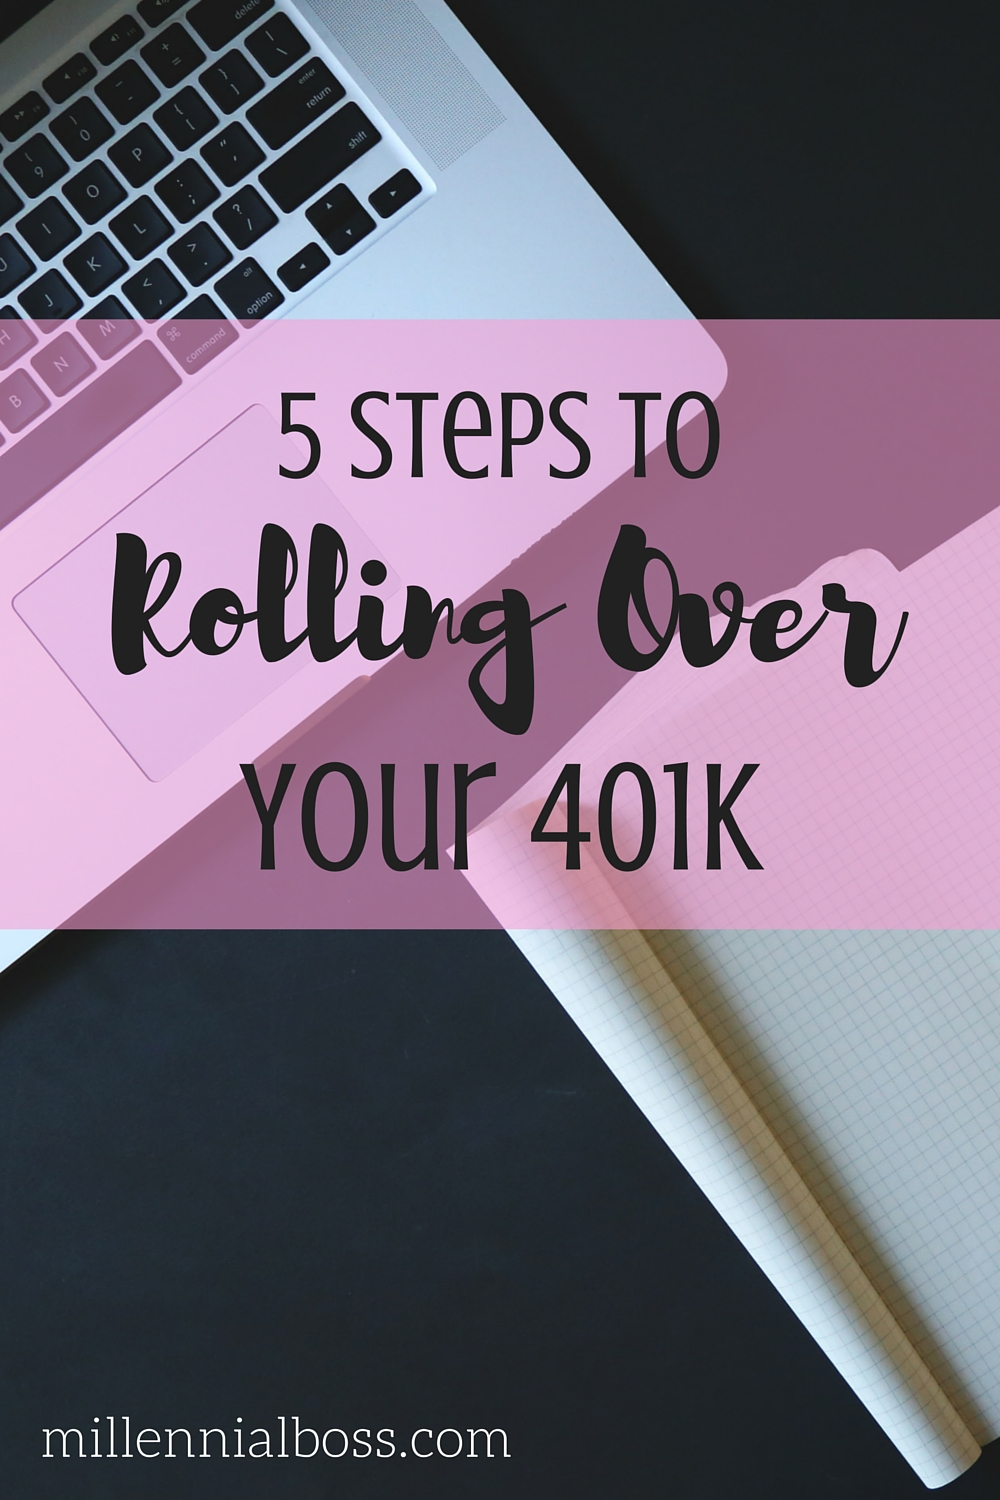 Best options for rolling over a 401k